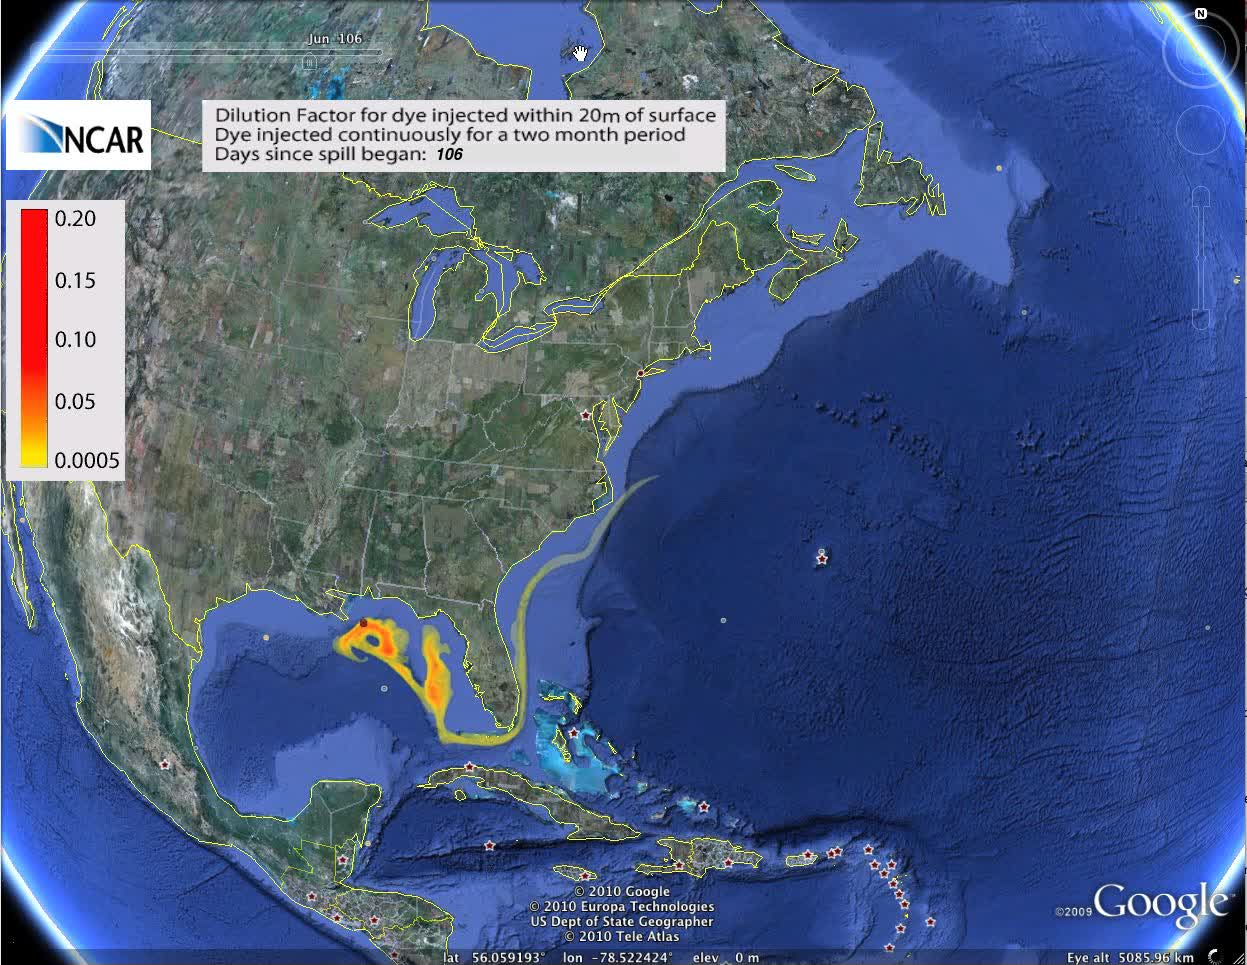 Ocean currents likely to carry oil to Atlantic (Google Earth Version)